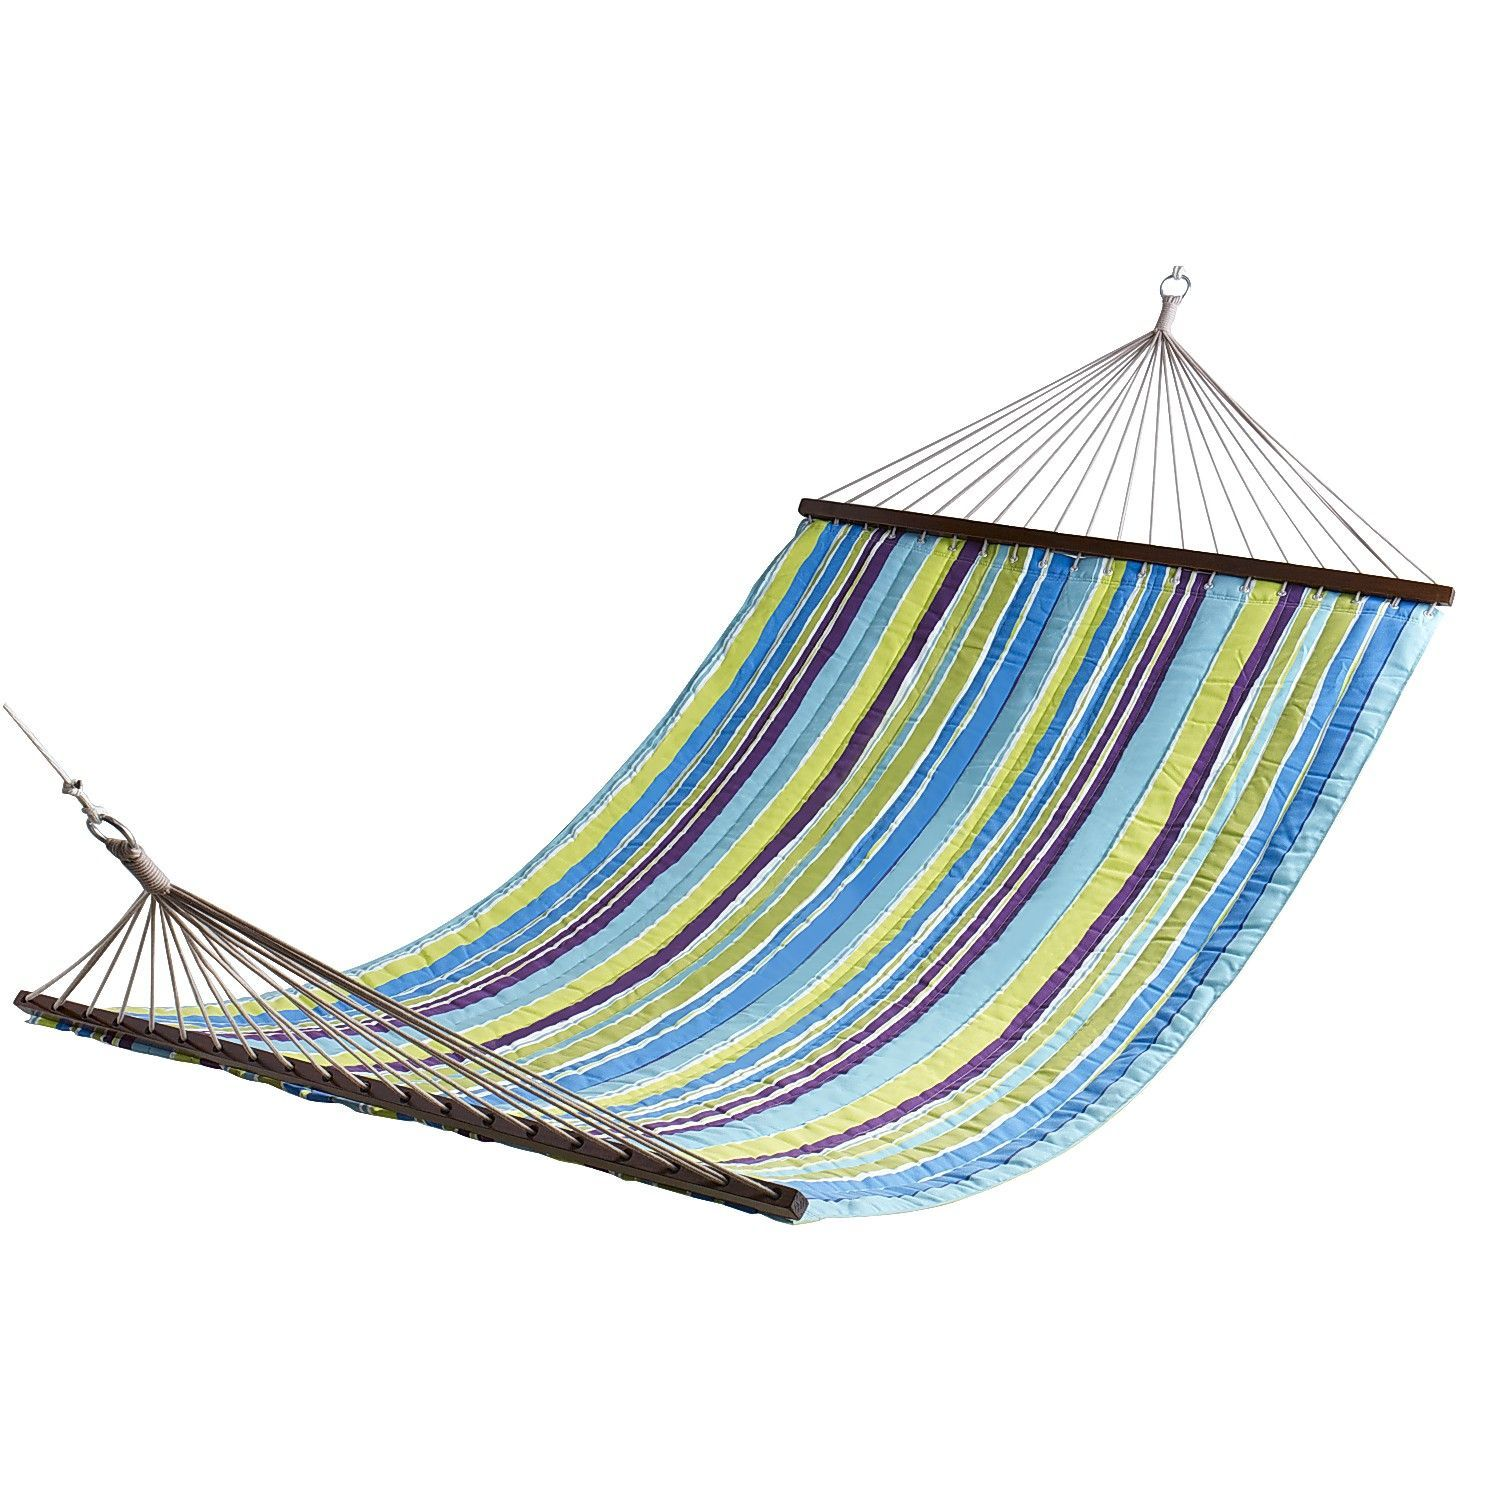 chair patio hammock buy weave worth dining rattan outsunny free garden lawn set pcs pea table furniture